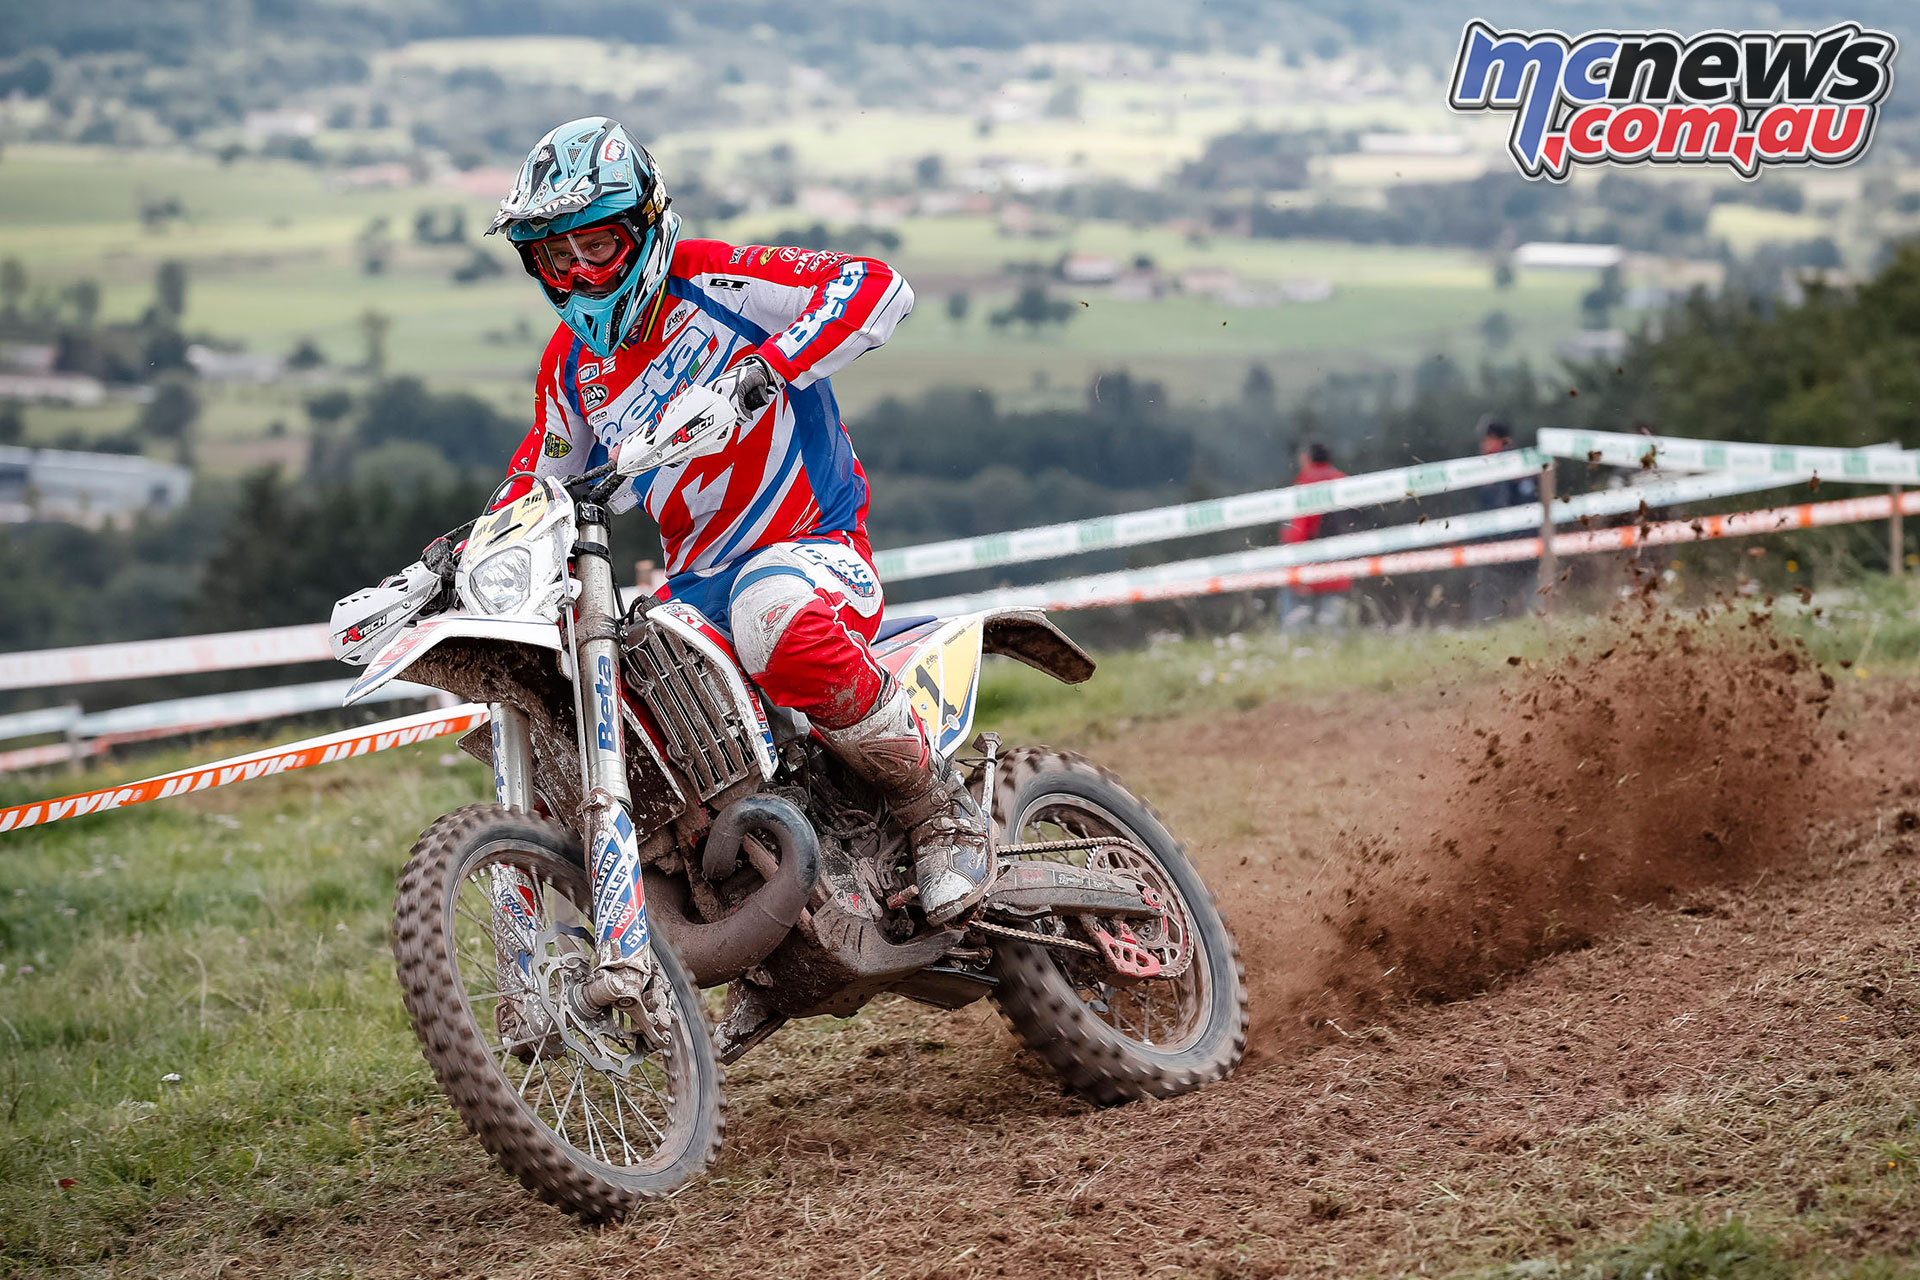 Steve Holcombe FM France EnduroGP Rnd